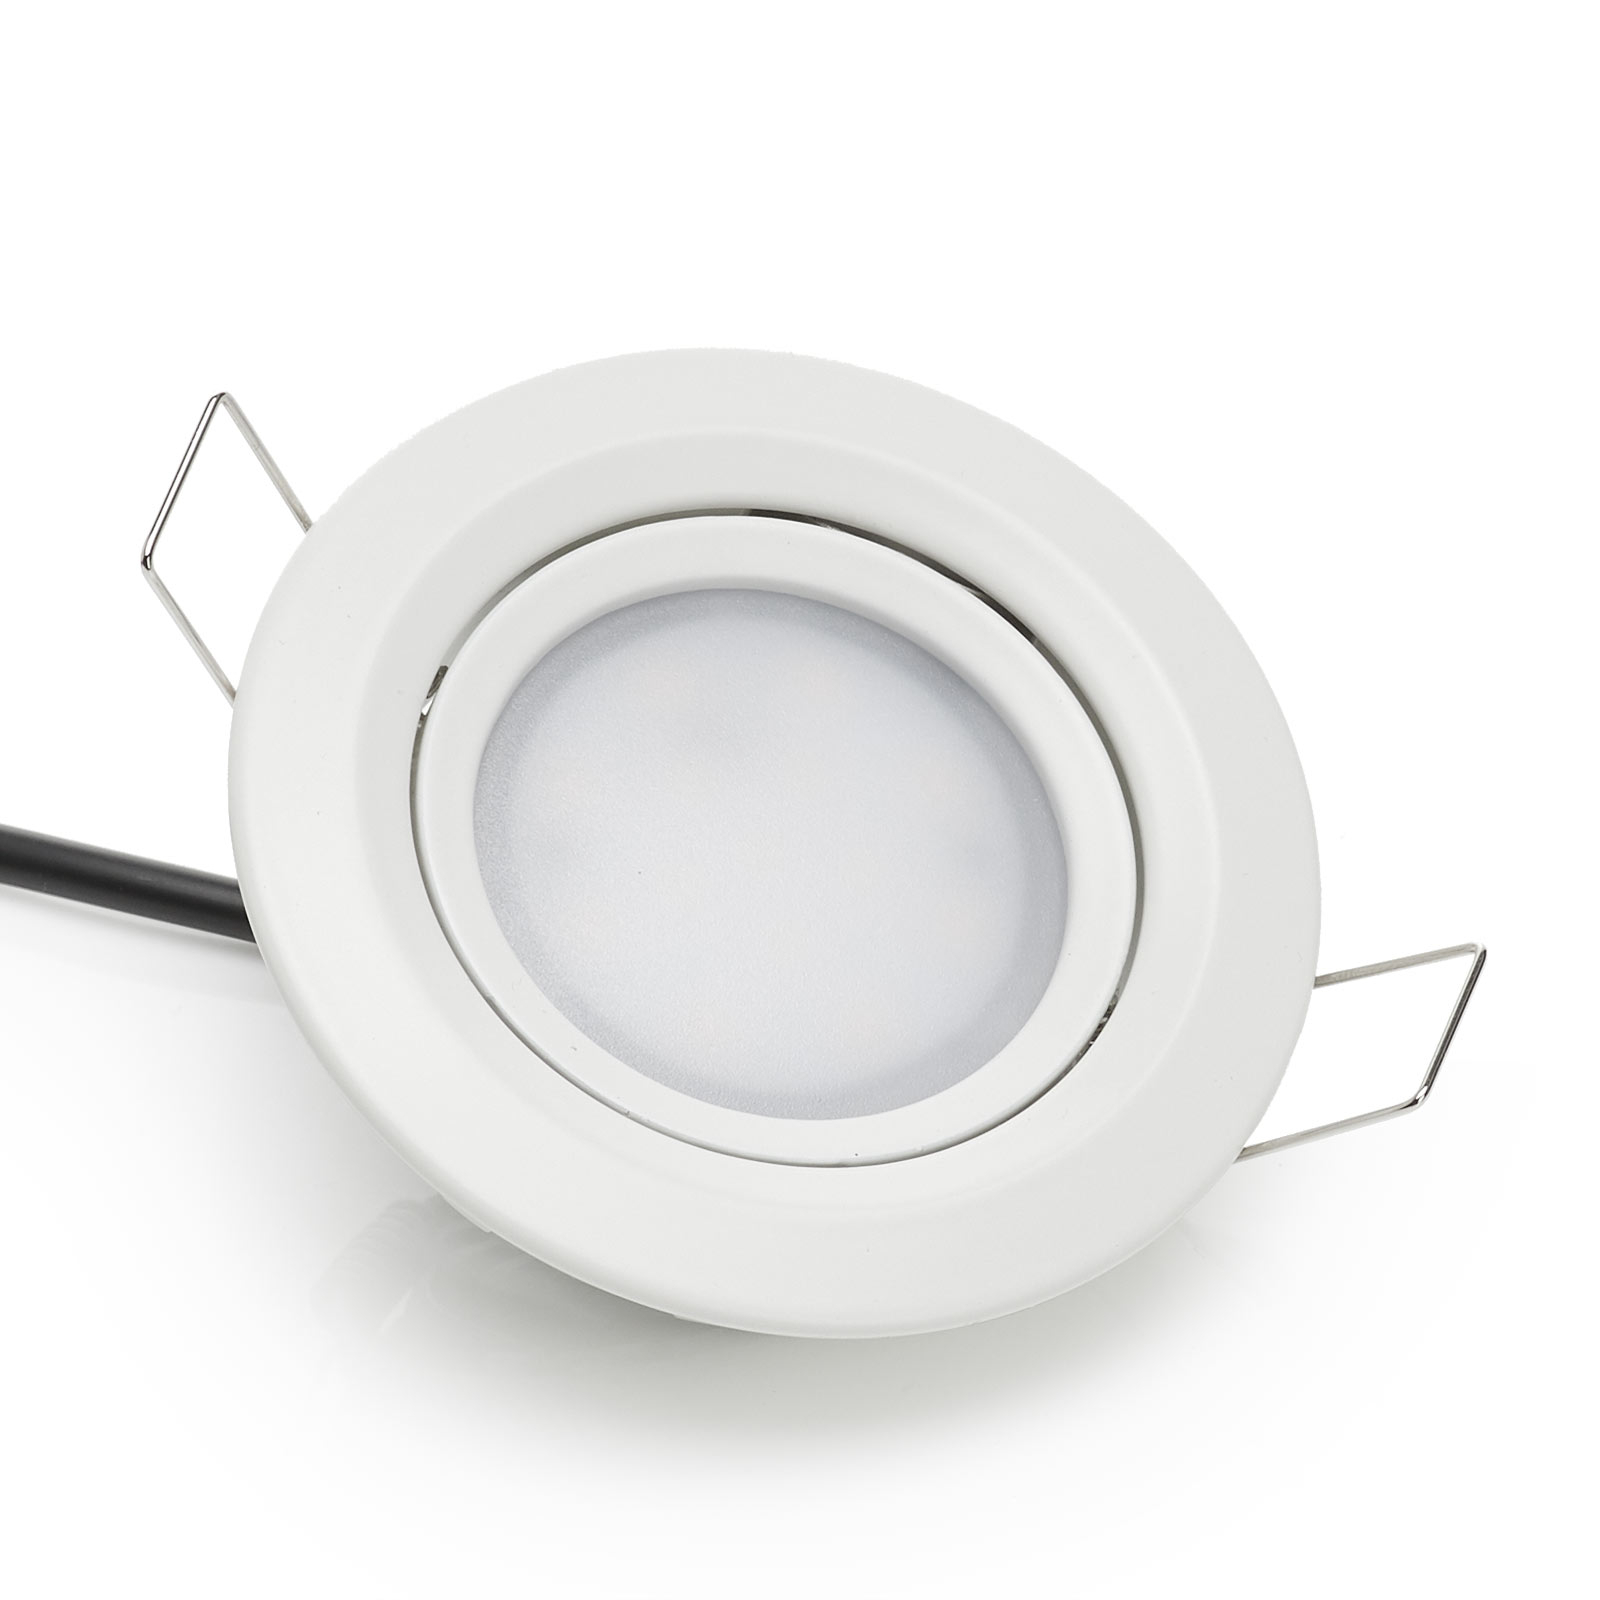 Set van 3 Coin Slim led inbouwspots, IP44